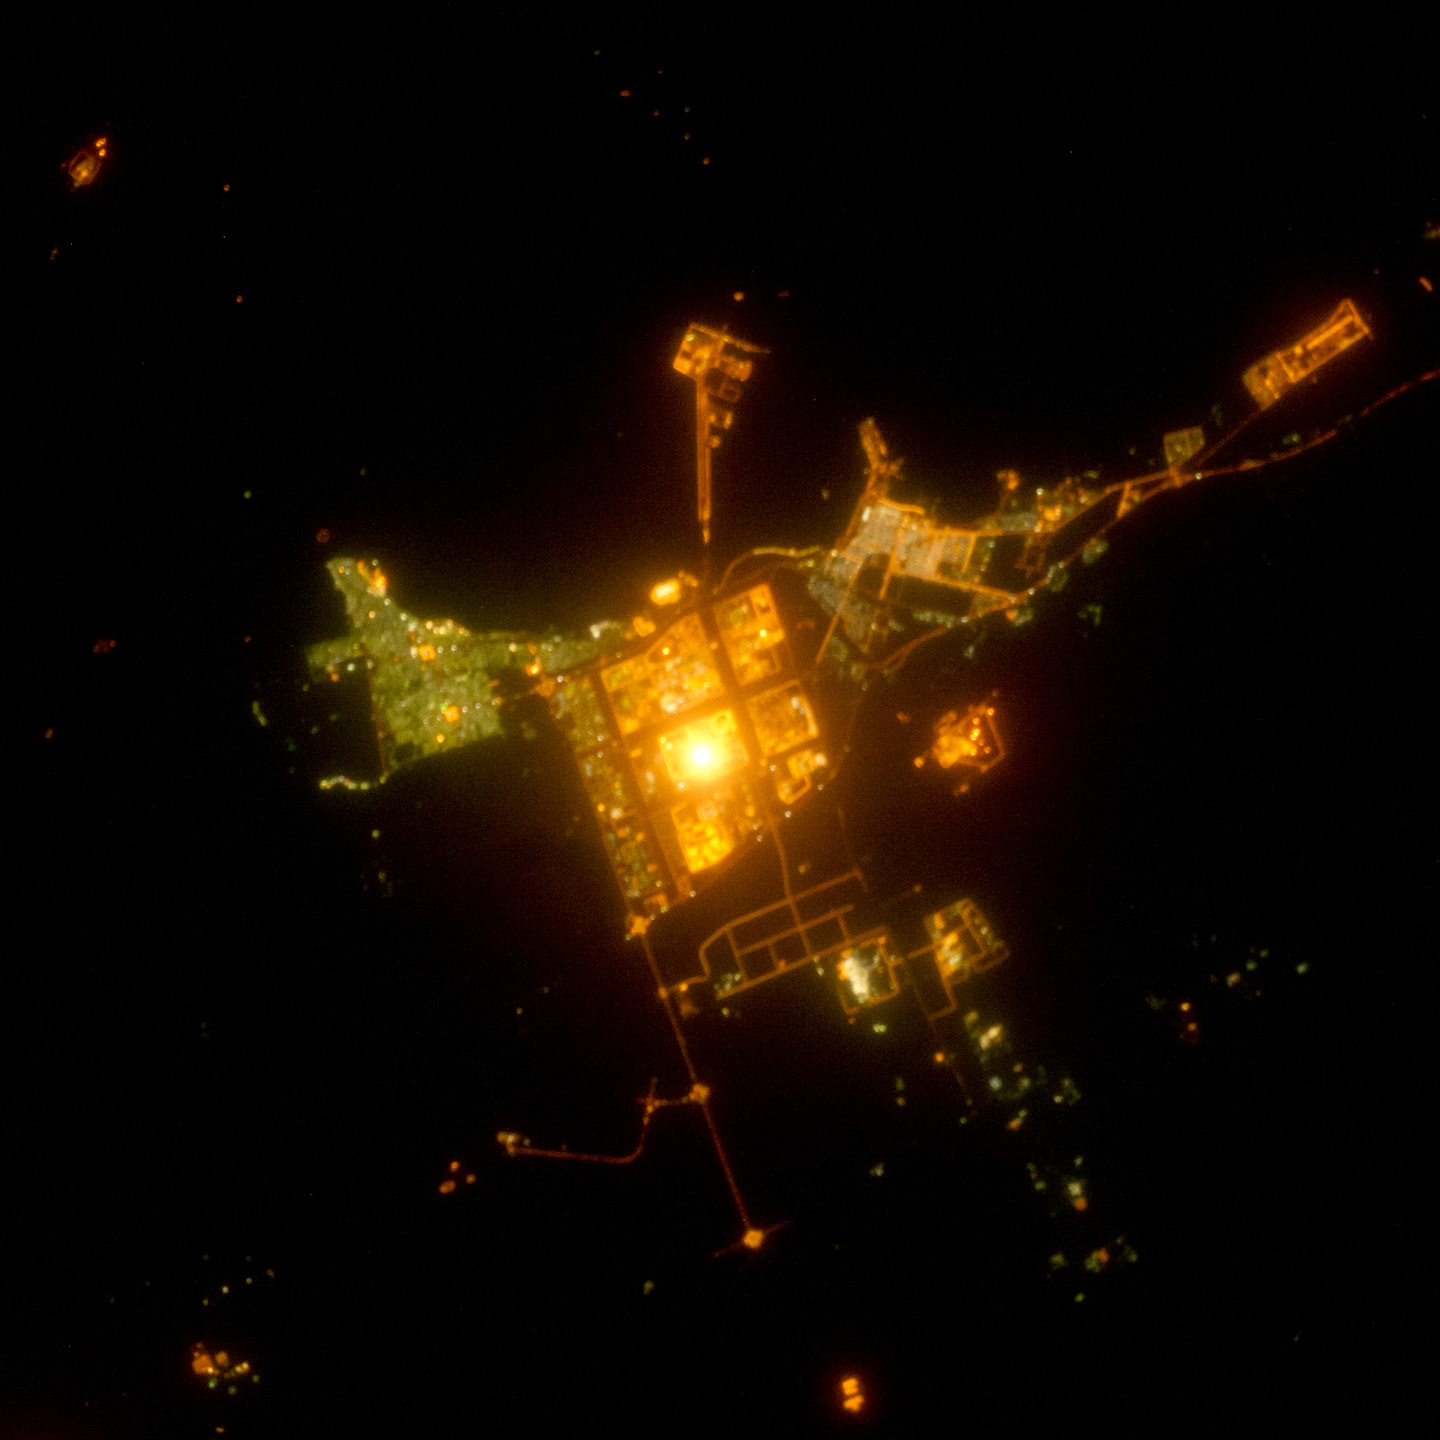 Iss Wallpaper Hd Al Jubayl Saudi Arabia At Night